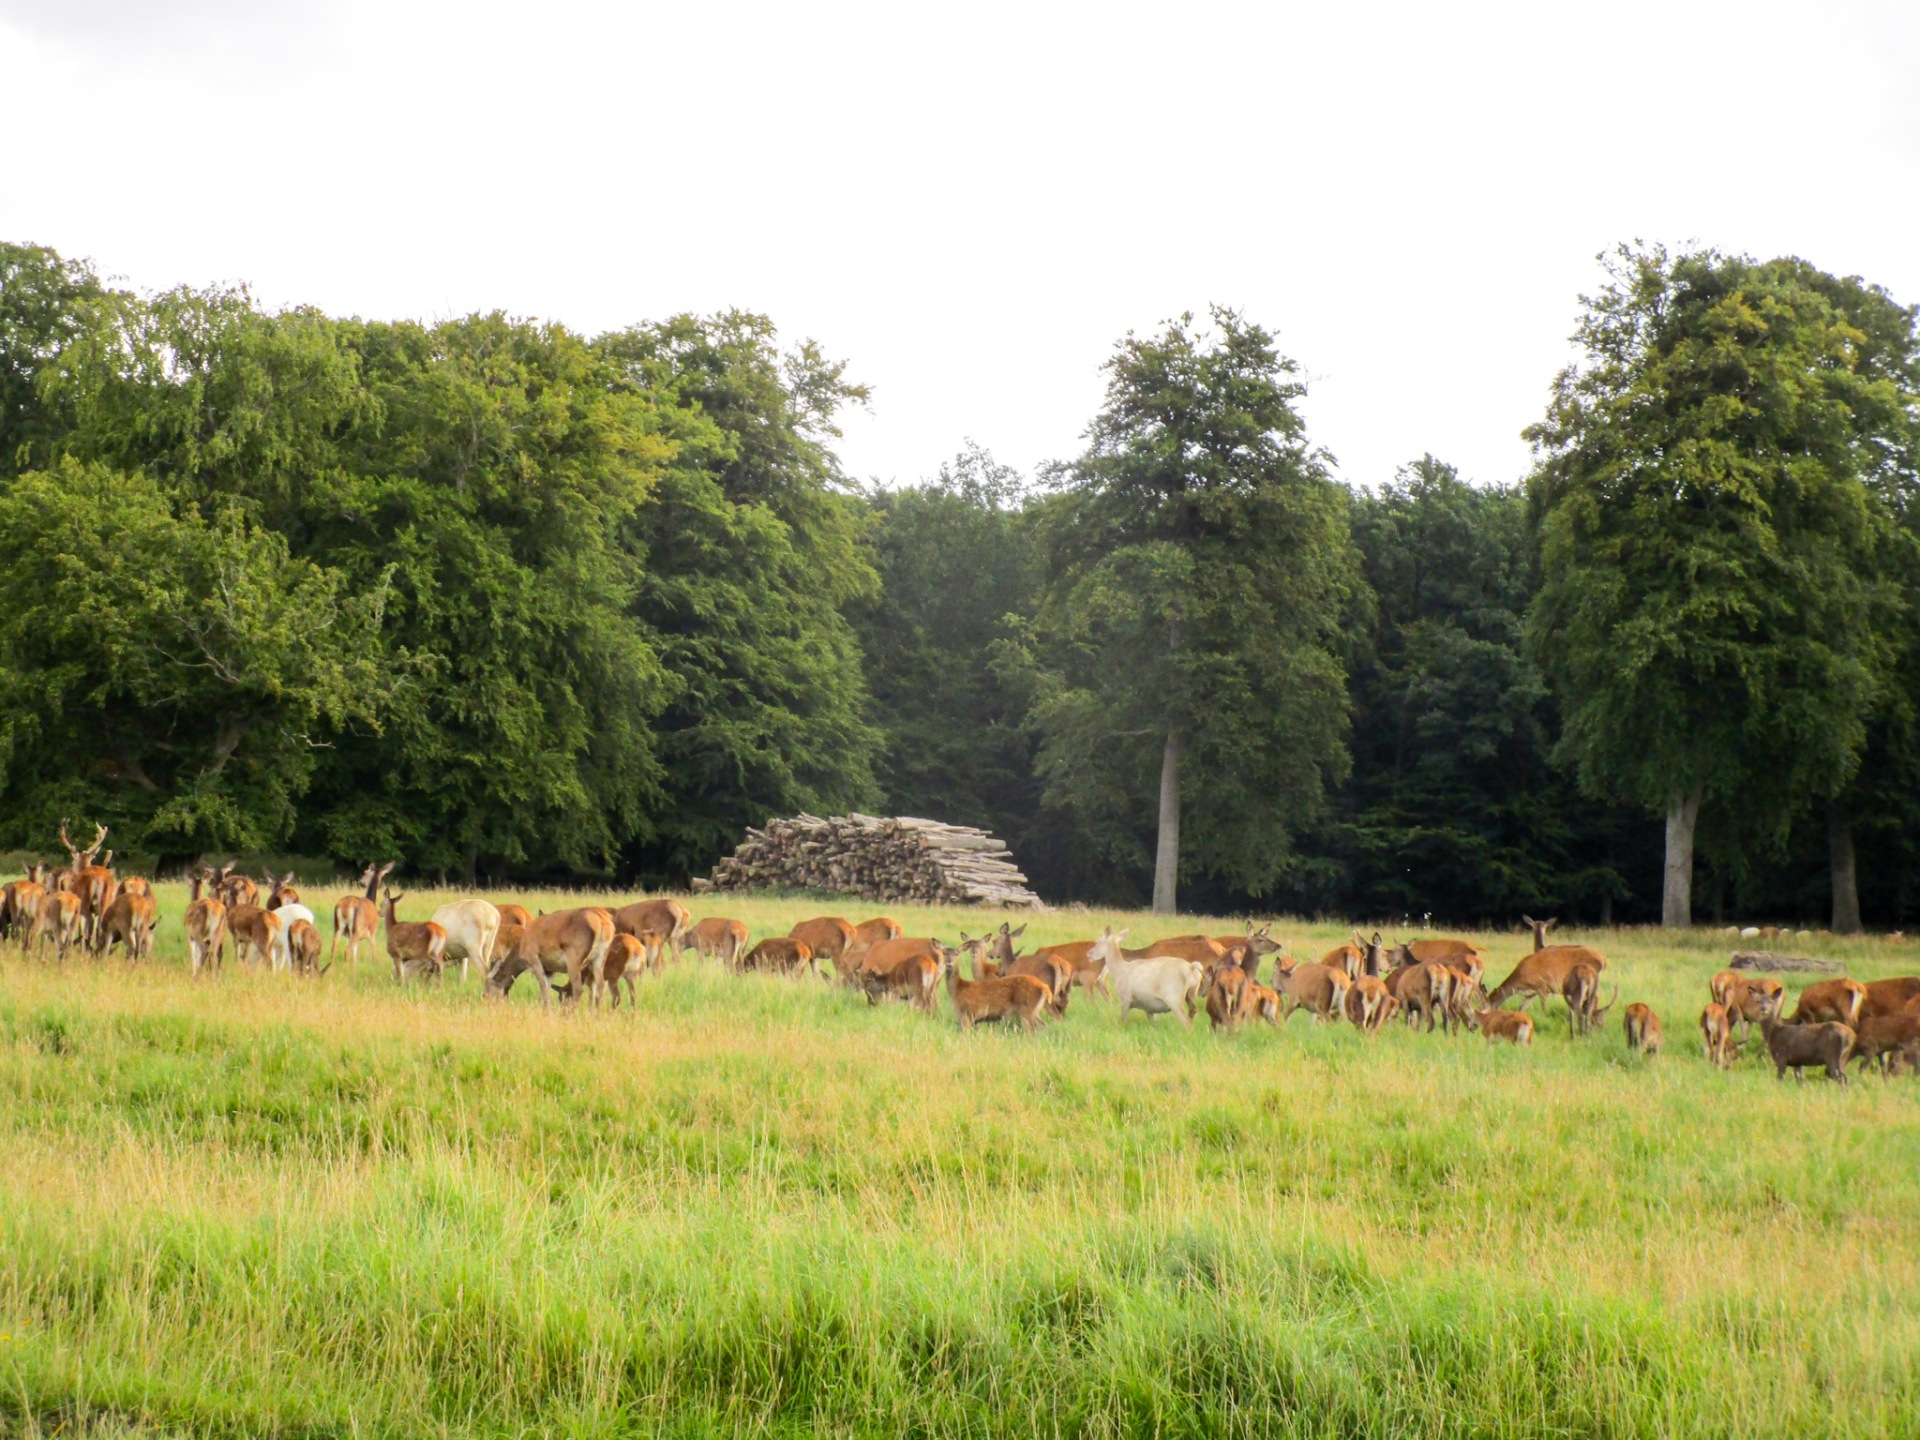 Herd of deer in Denmark